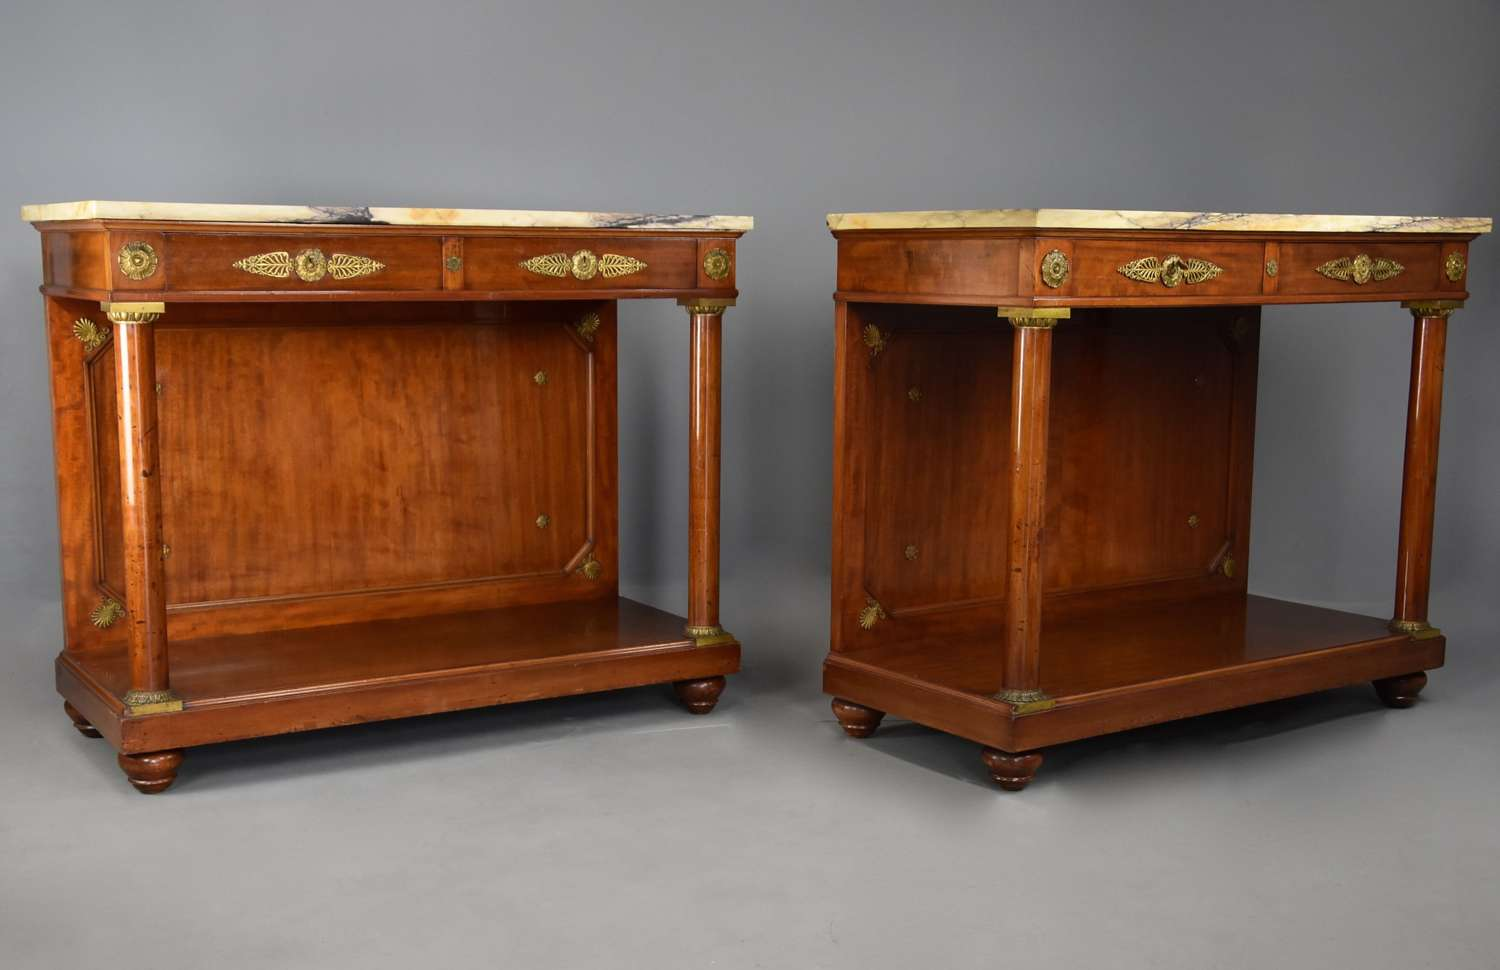 Pair of 19thc French Empire style console tables, stamped 'Krieger'